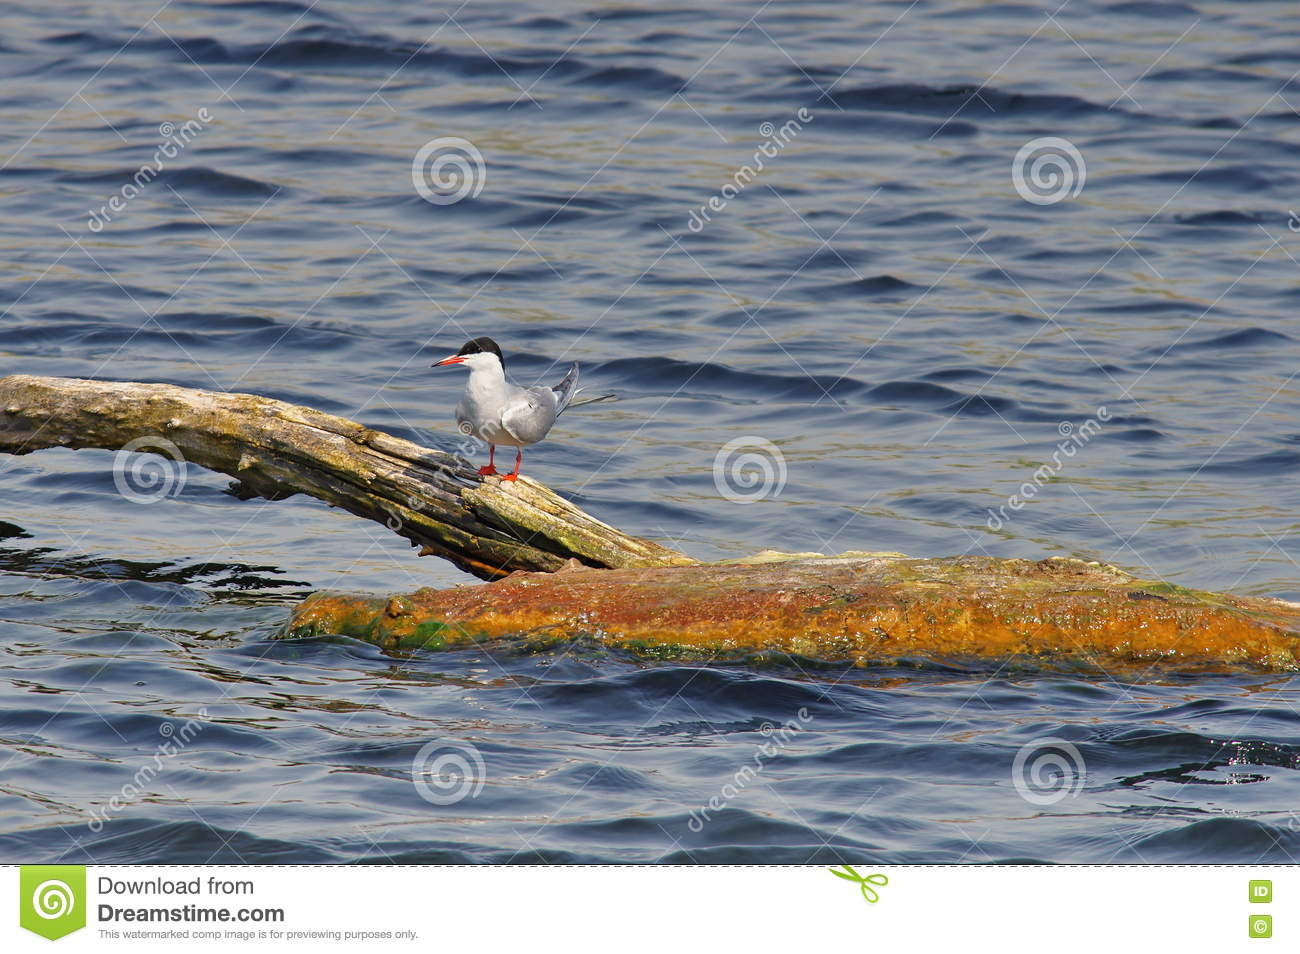 Common tern - natural reserve of the Danube Delta, landmark attraction in Romania. Summer seascape